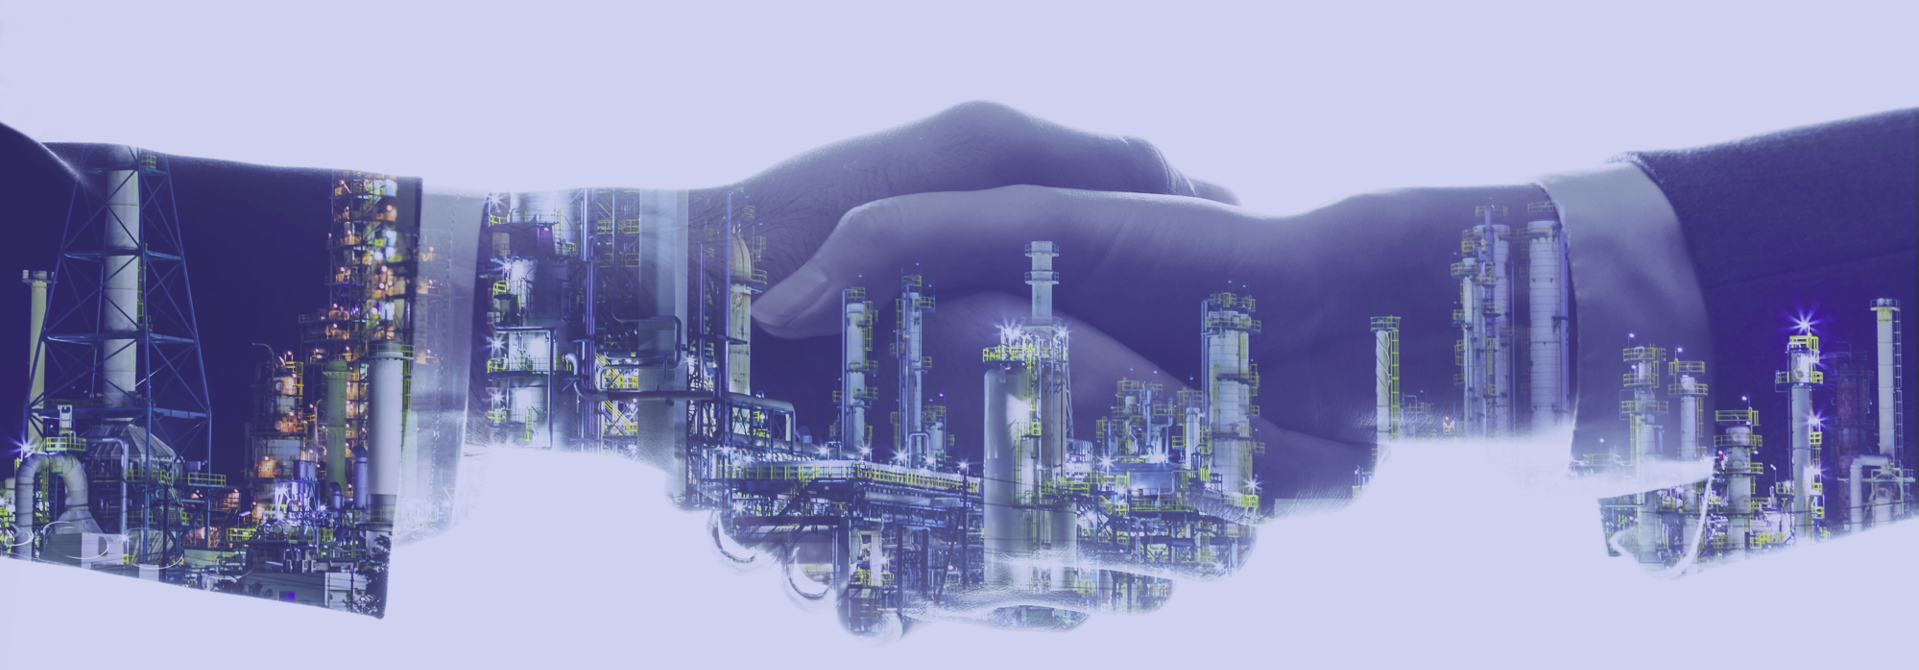 manufacturing and engineering image banner